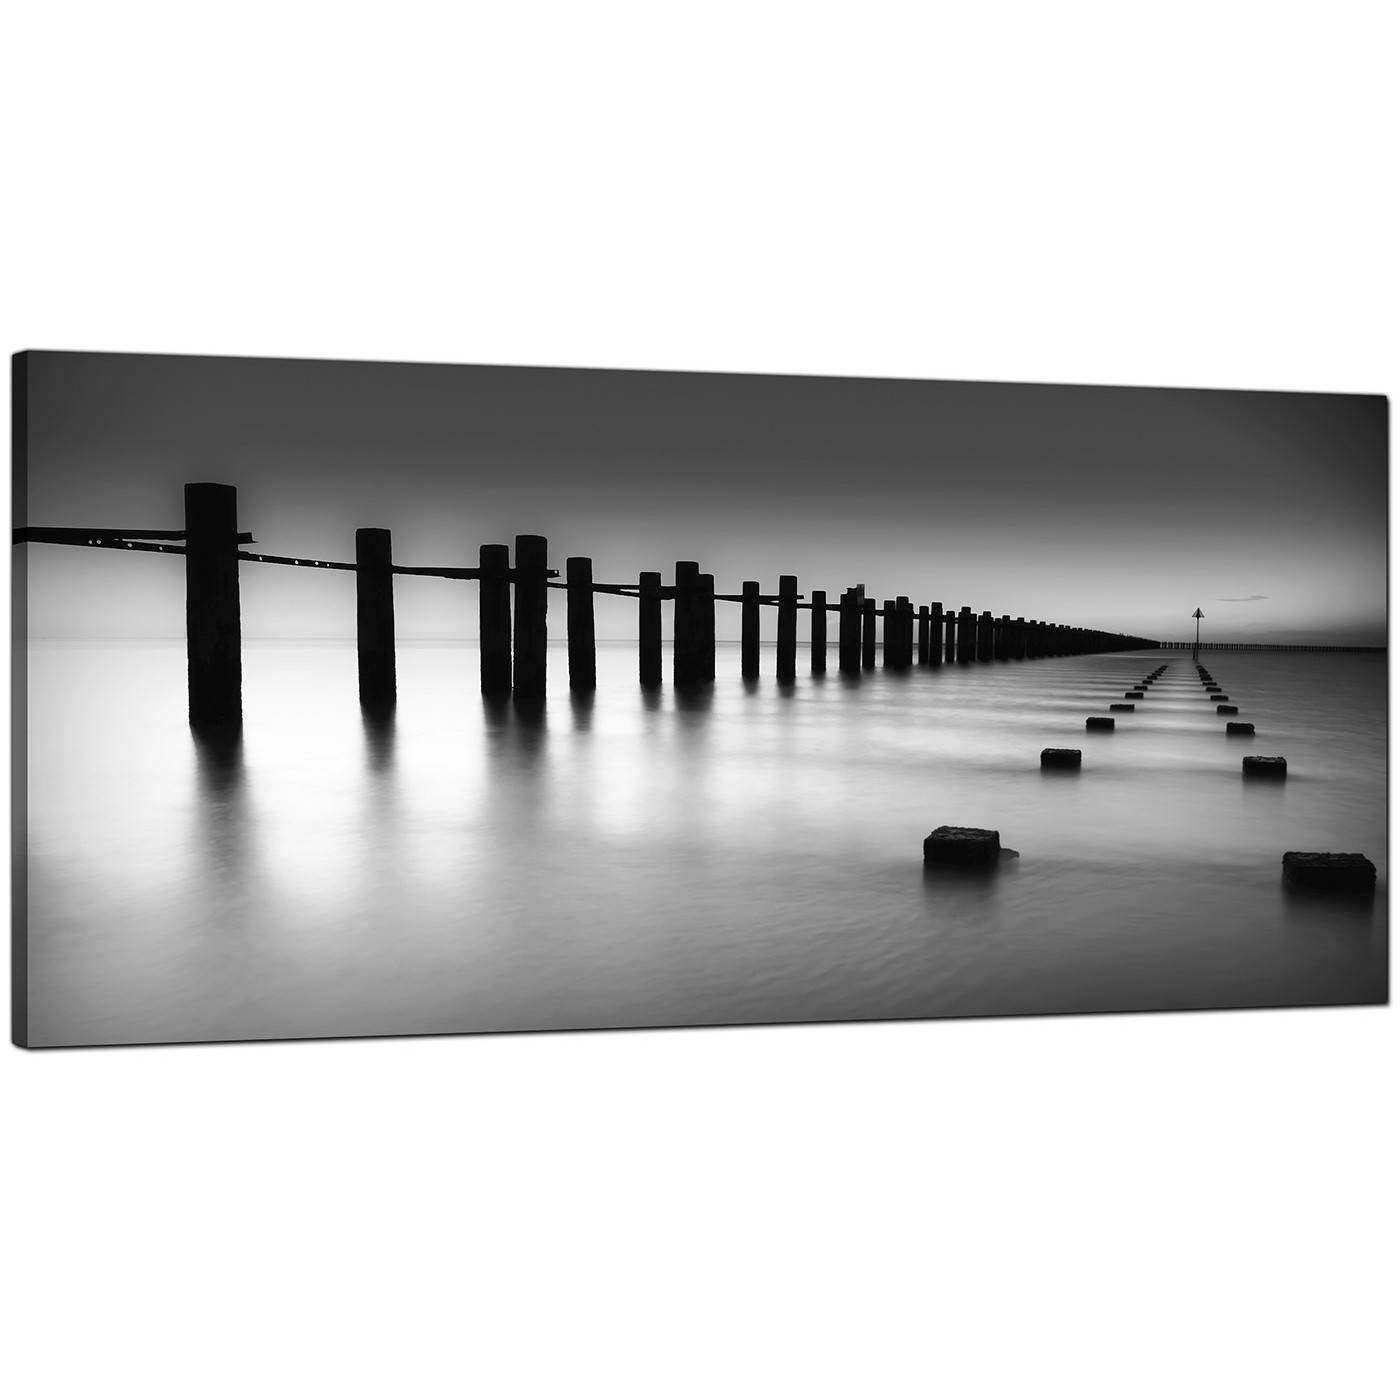 Modern Black And White Canvas Art Of The Sea Regarding Most Popular Large Black And White Wall Art (View 9 of 20)